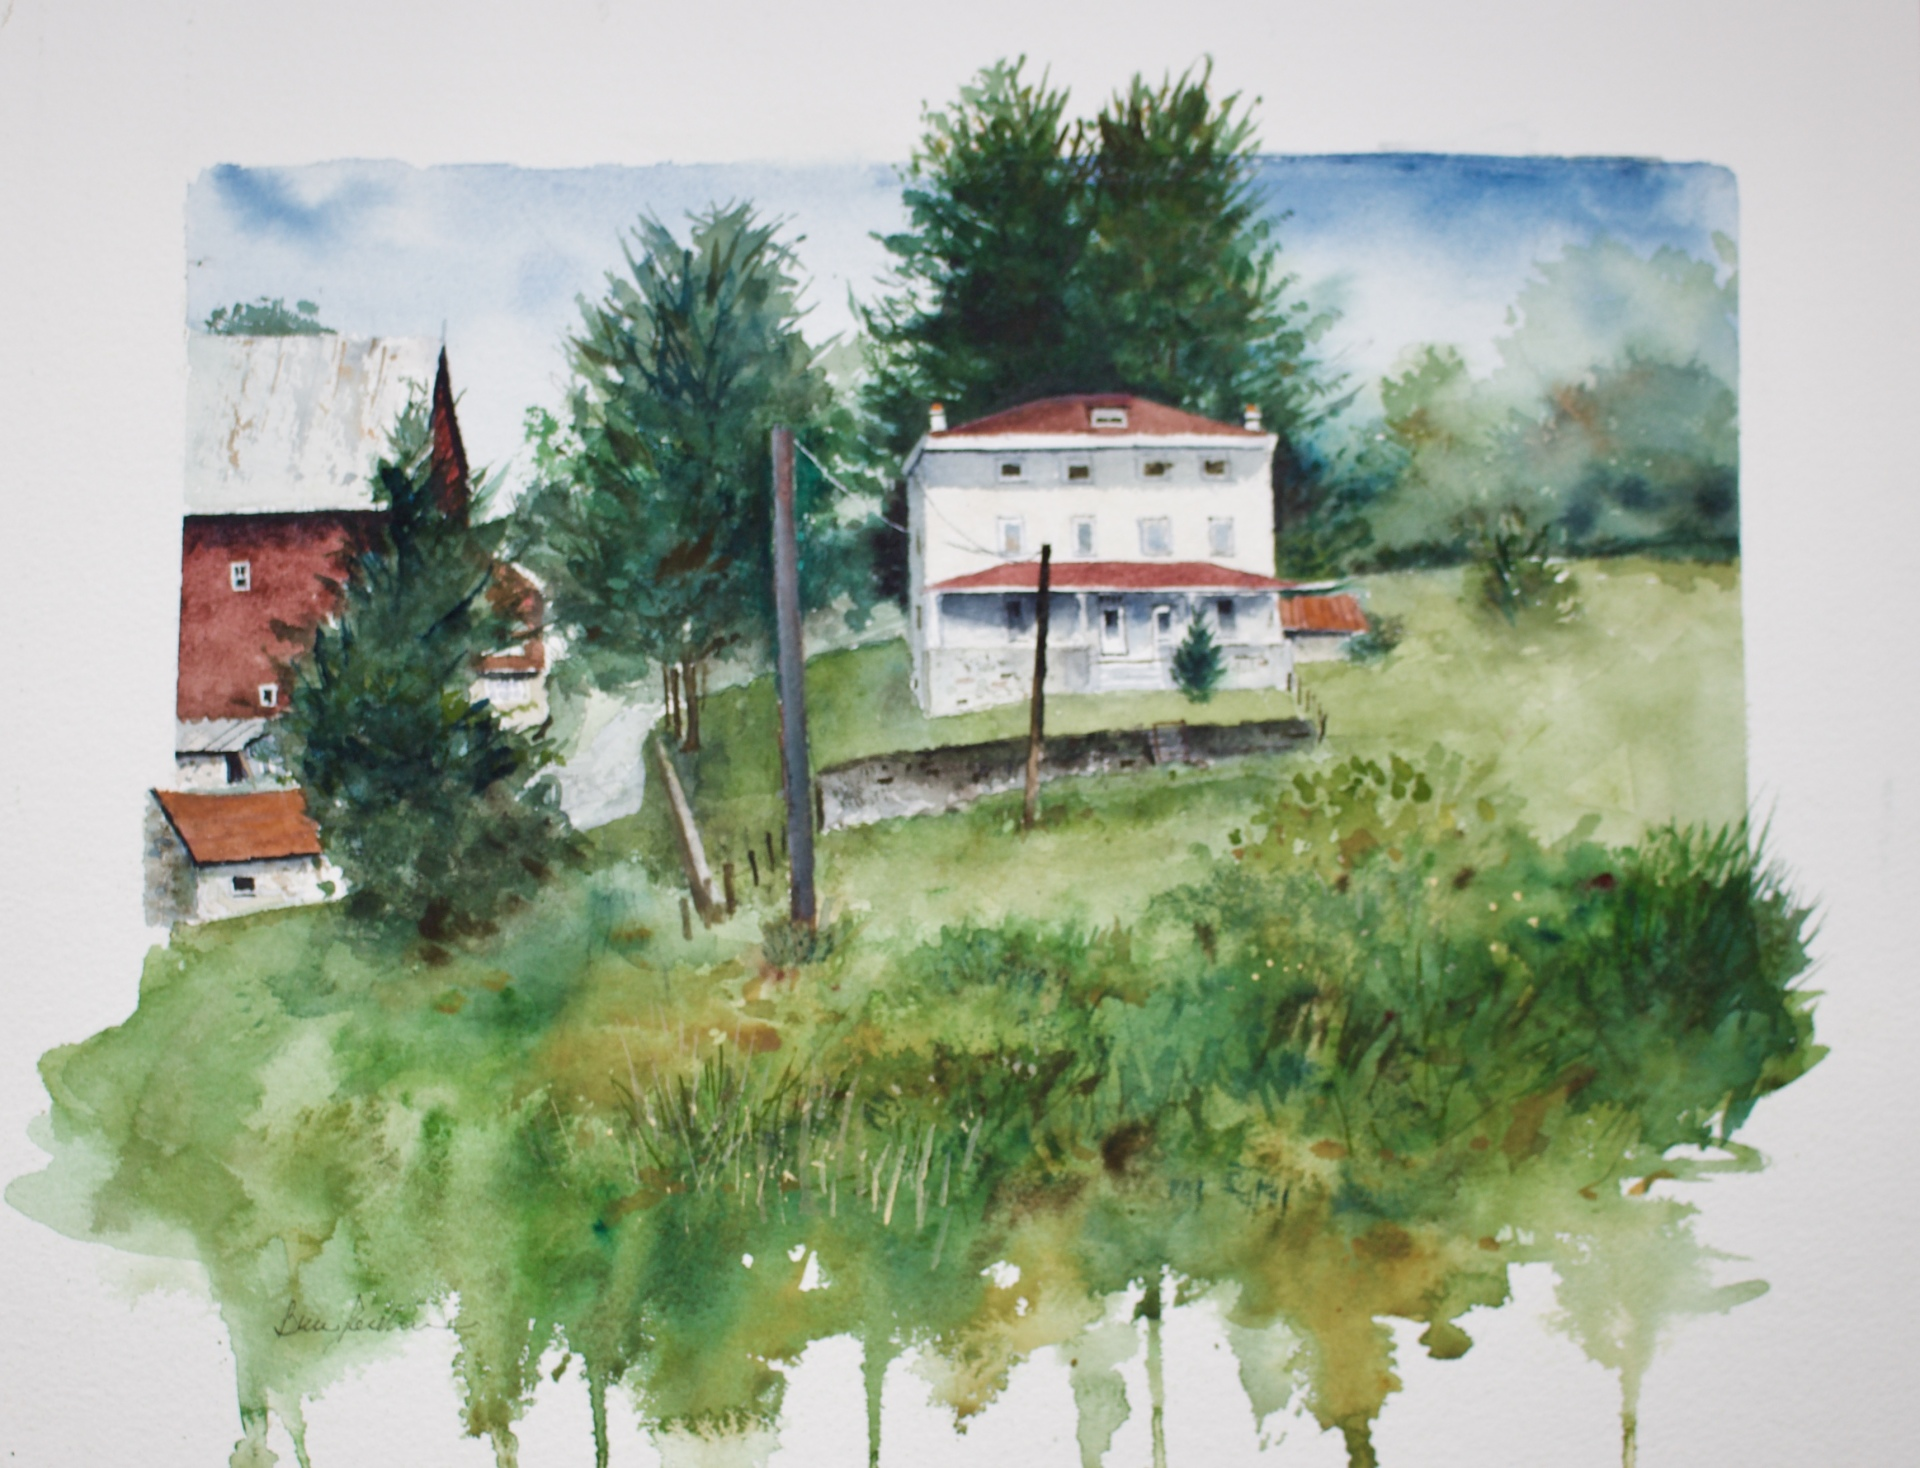 Plein Air painting at the Kuerner farm